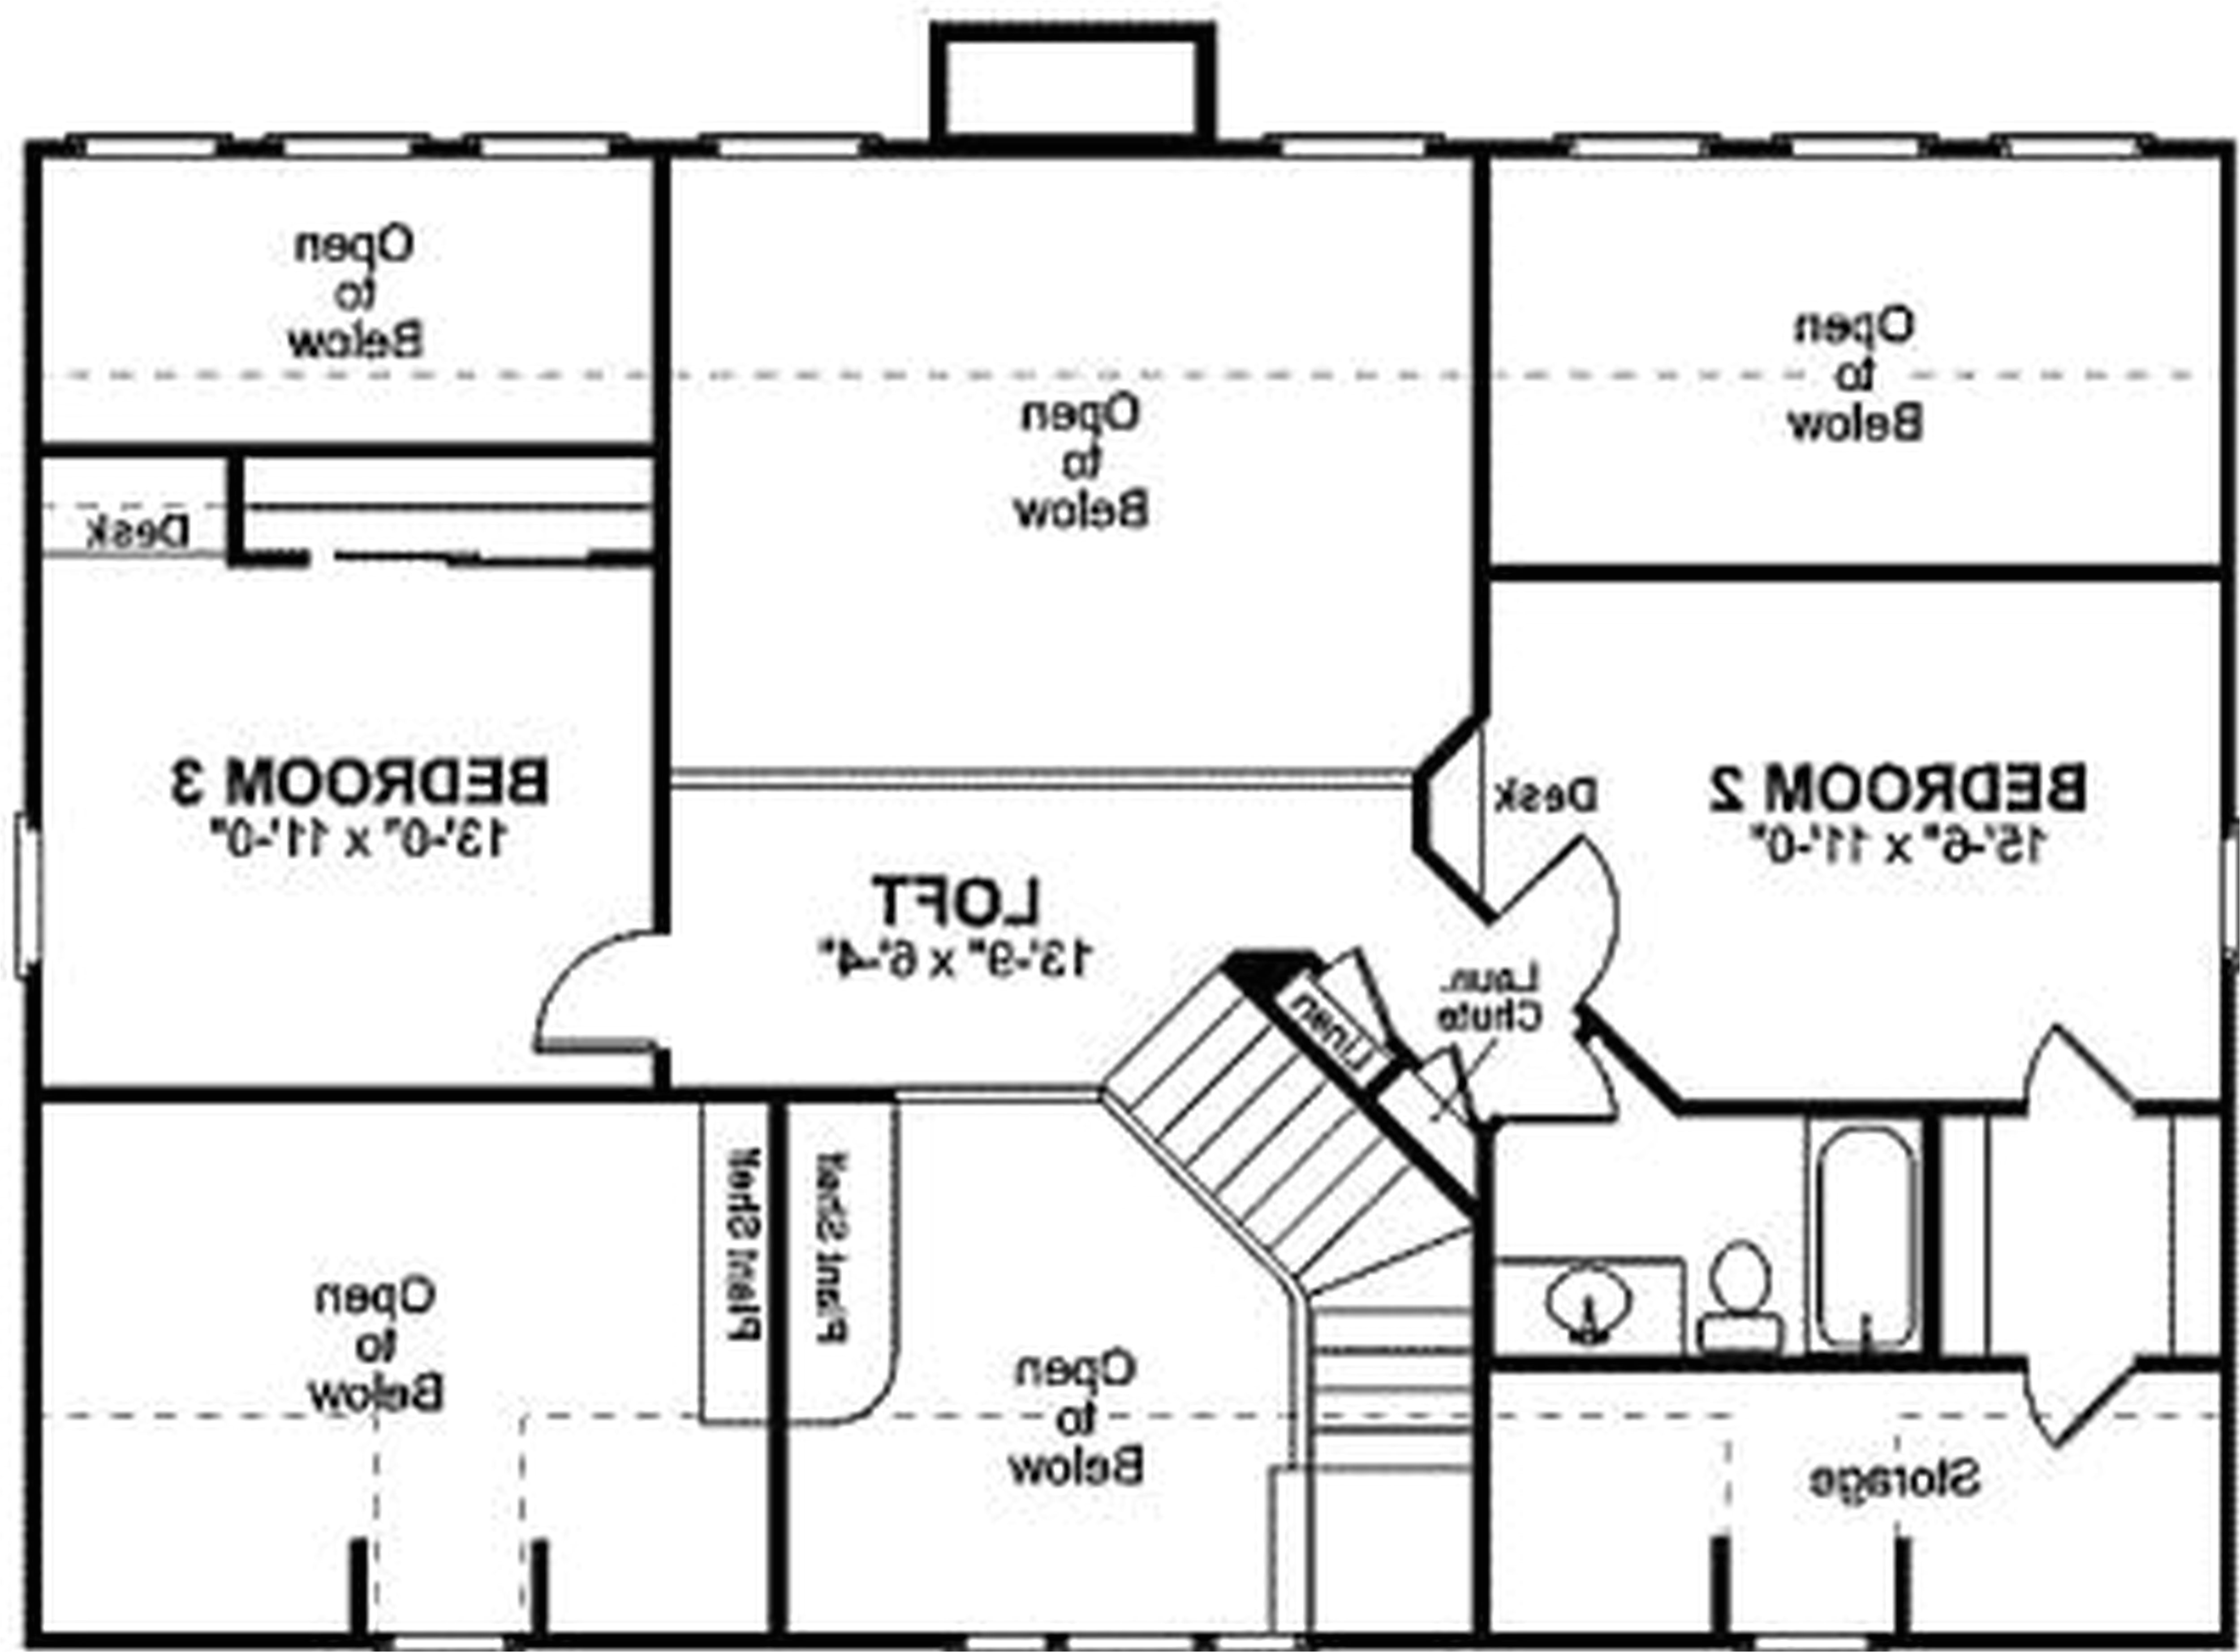 design your own home free tritmonk floor plan home interior design ideas with images dream online designing planner